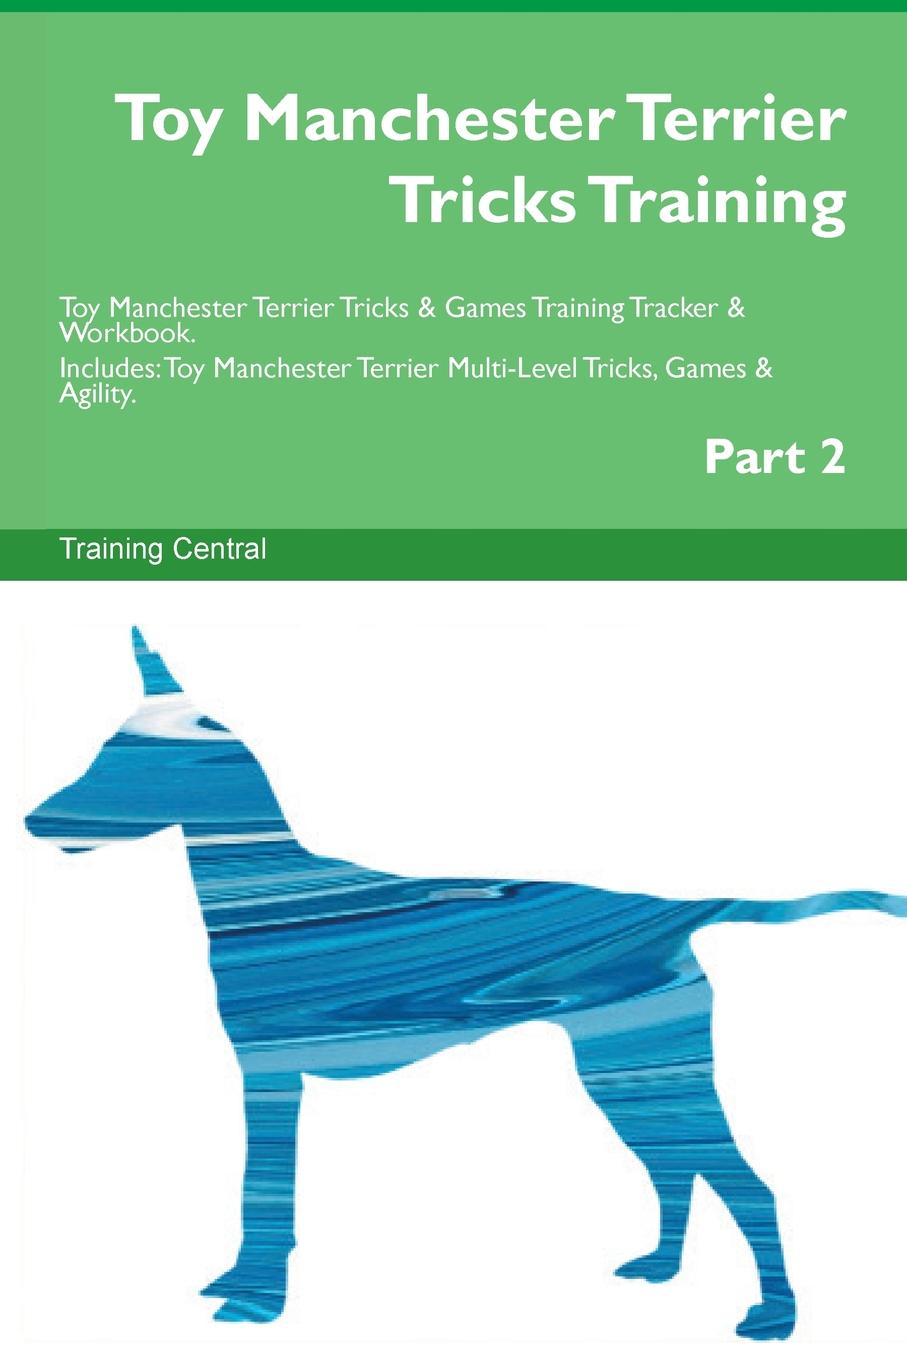 Training Central Toy Manchester Terrier Tricks Training Toy Manchester Terrier Tricks . Games Training Tracker . Workbook. Includes. Toy Manchester Terrier Multi-Level Tricks, Games . Agility. Part 2 this book loves you